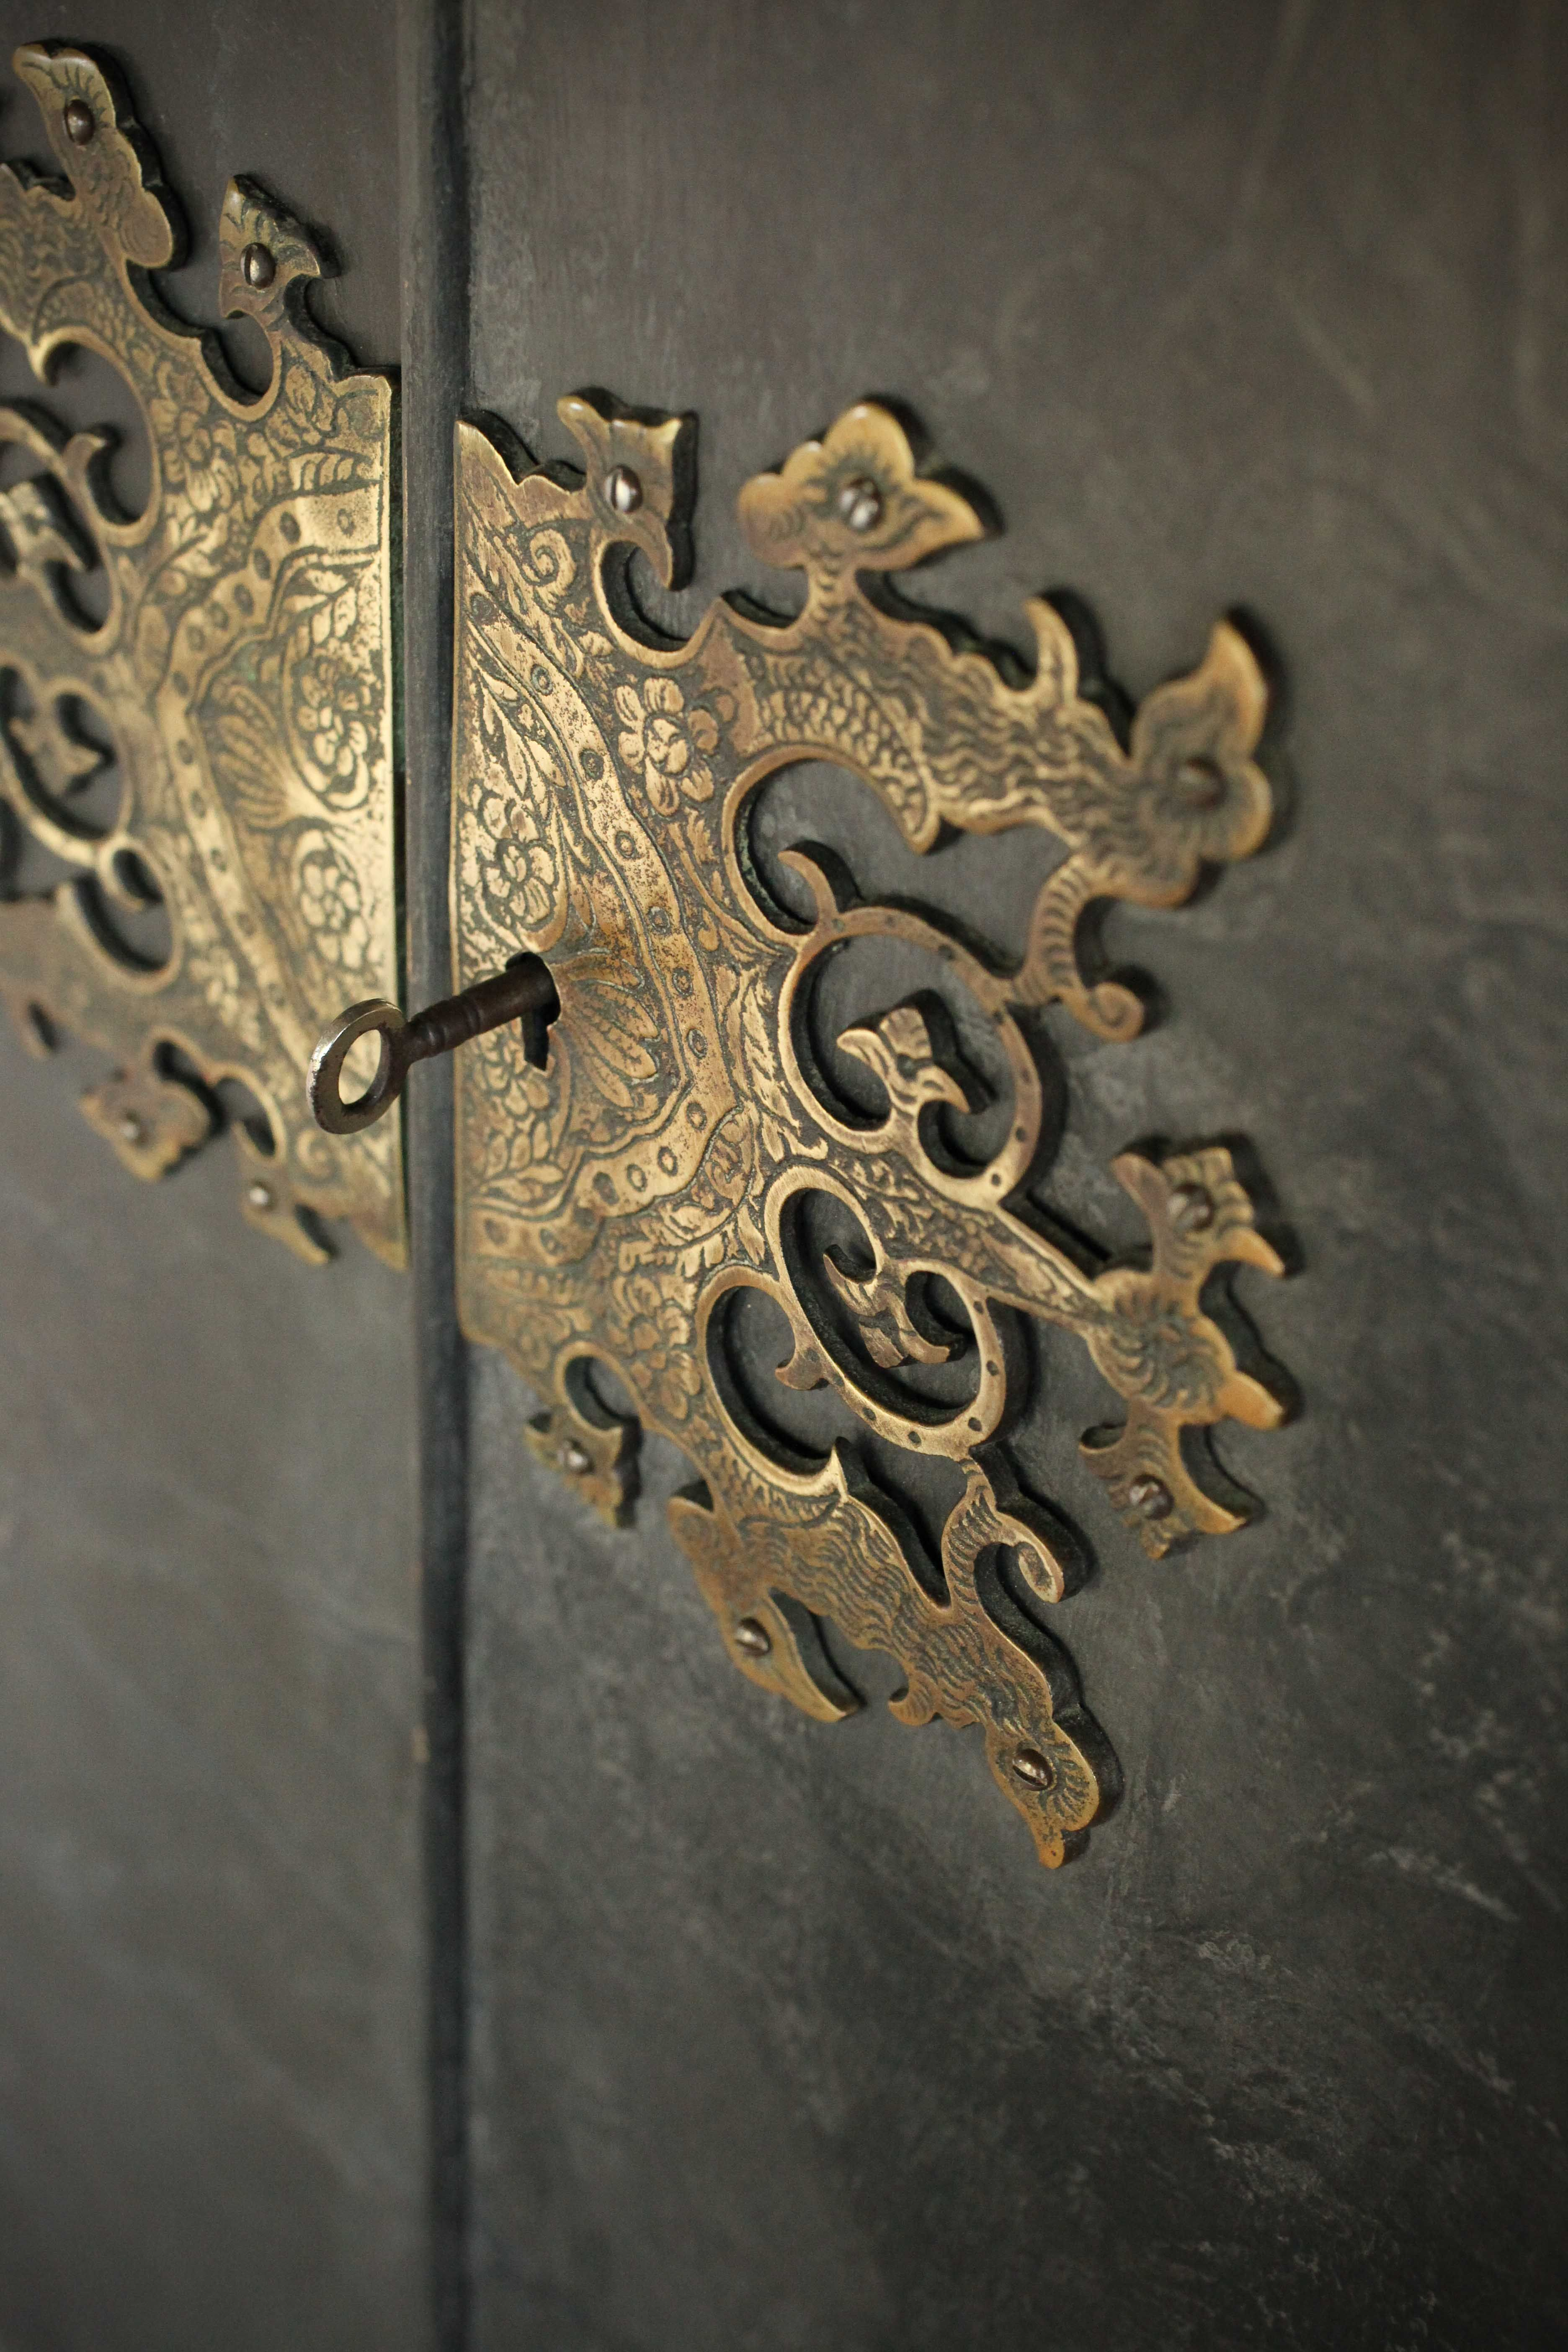 Chinoiserie / Oriental Brass Door / Cabinet Hardware   Source For Chinese  Hardware: An EBay